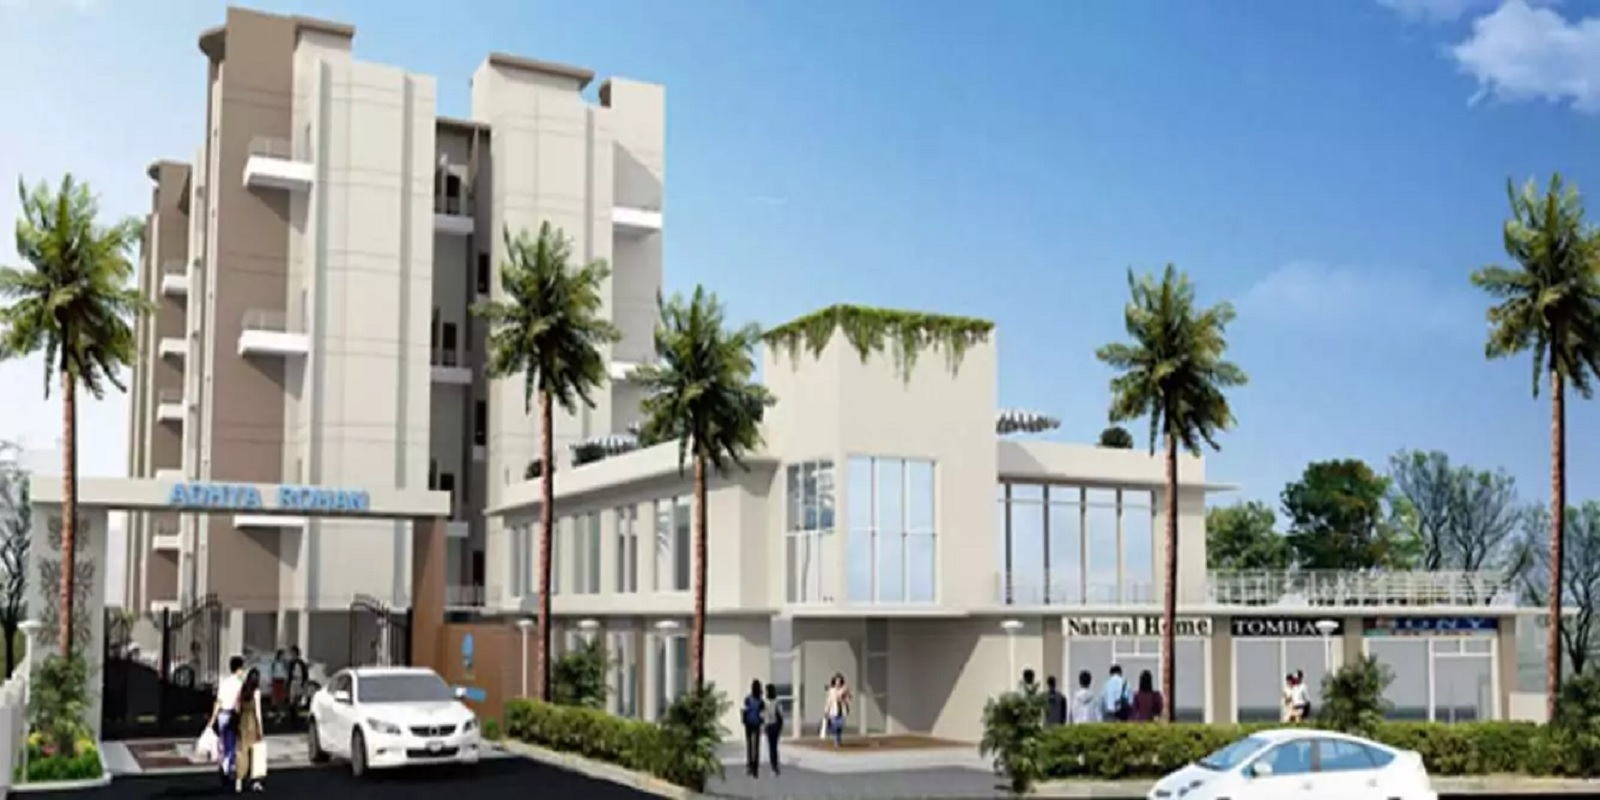 adhya rohan project project large image1